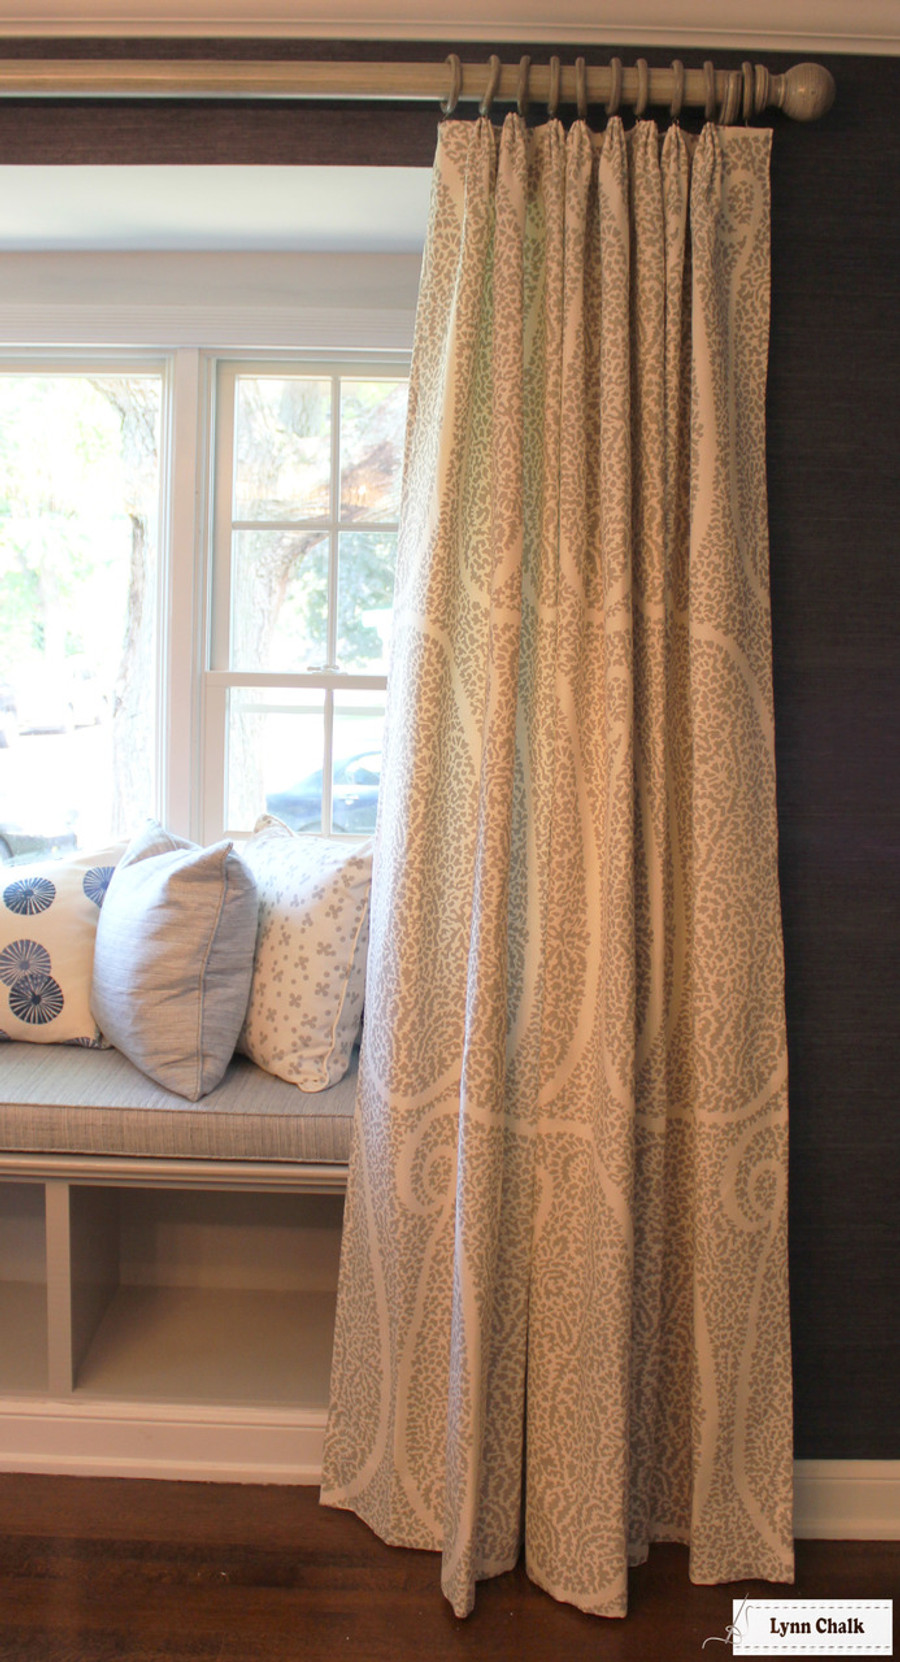 Schumacher Ambala Paisley Fog Drapes with Western Wood Supply Drapery Hardware Painted in Old Ivory.   Cushion in Schumacher Travertine Linen Weave in Denim.  Pillows in Groundworks Kasa and Christopher Farr Pollen. (Erika Mercurio Design)